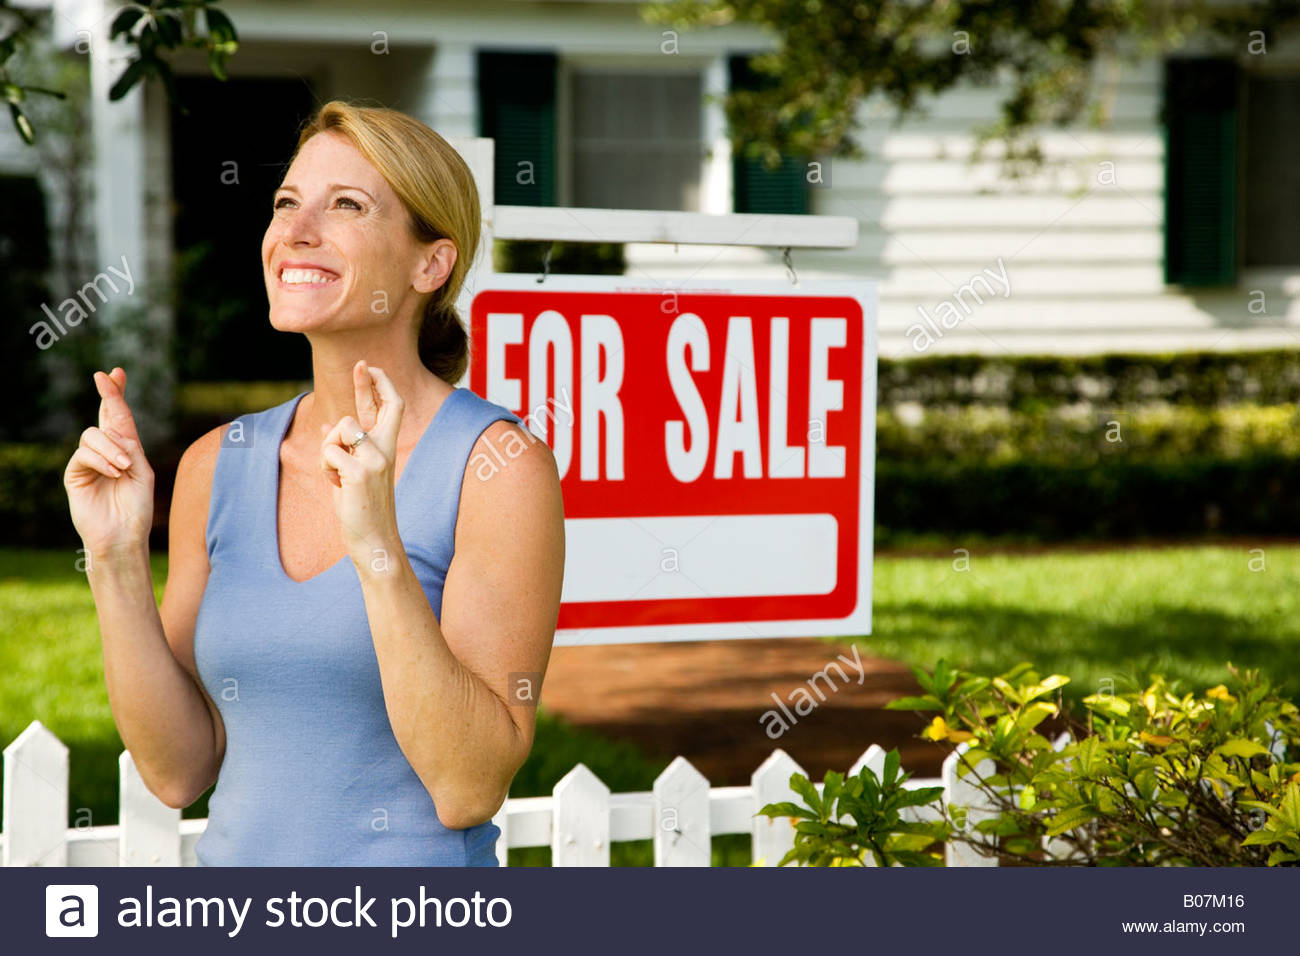 Woman standing by a for sale sign outside a family house, fingers crossed - Stock Image